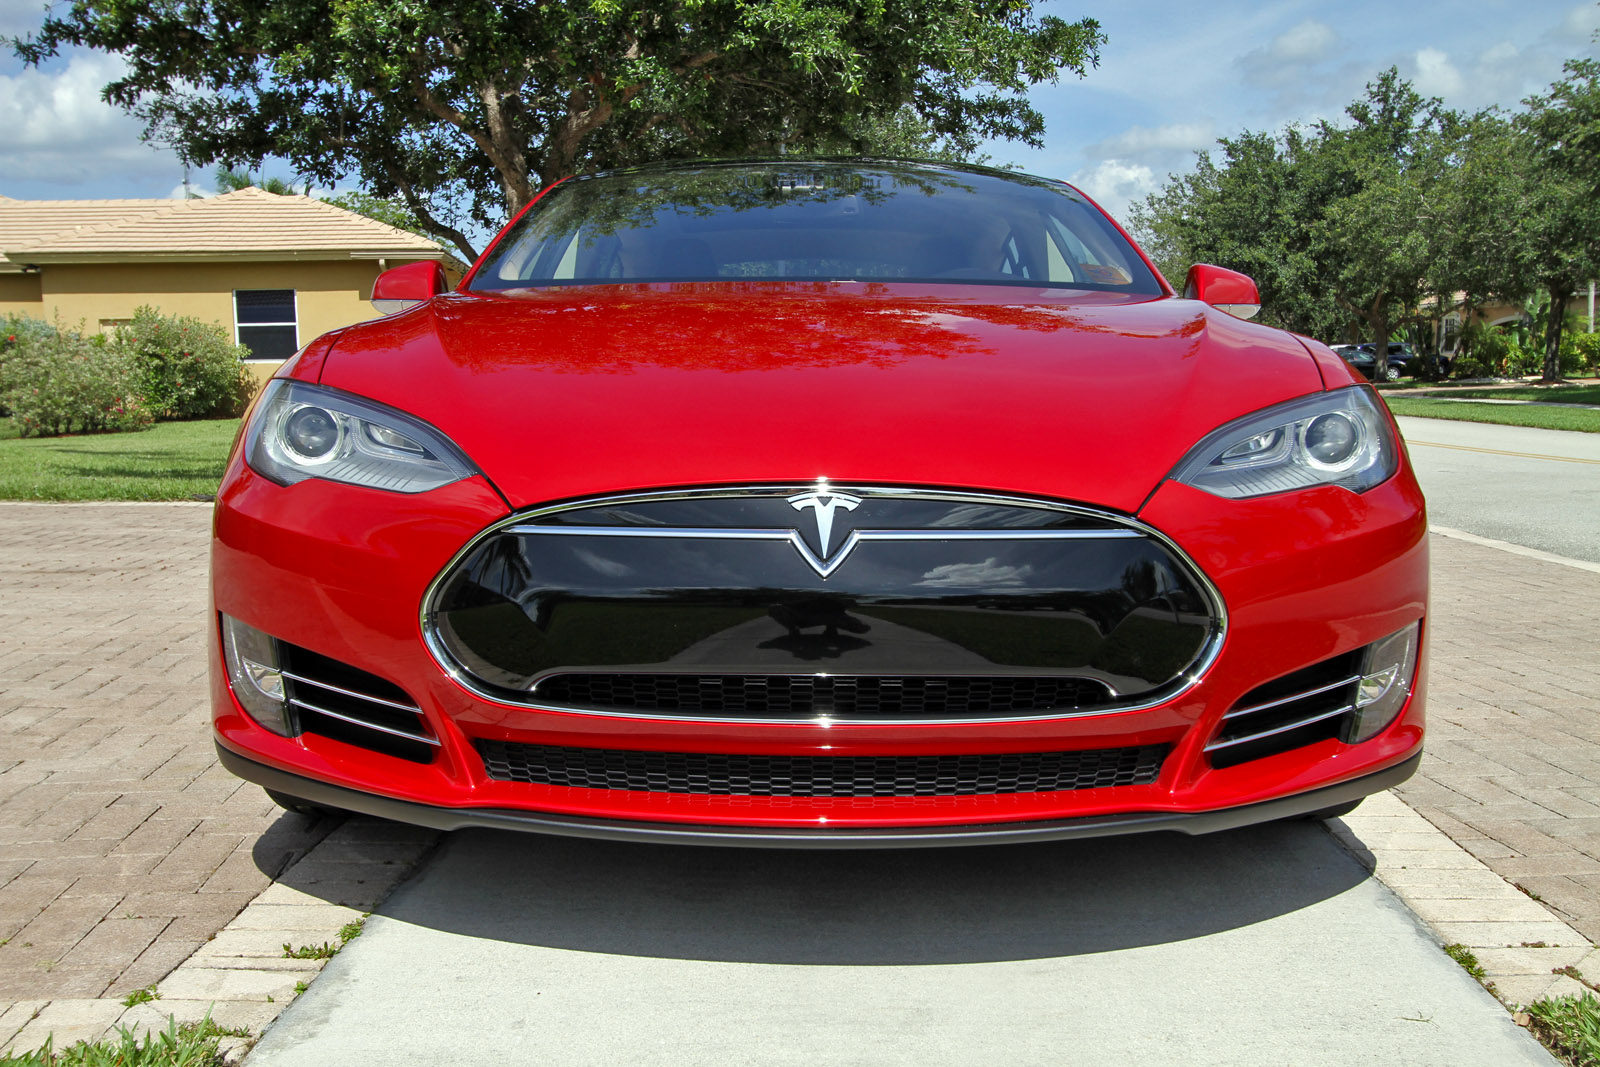 2013-tesla-model-s-p85-multi-coat-red-004.jpg